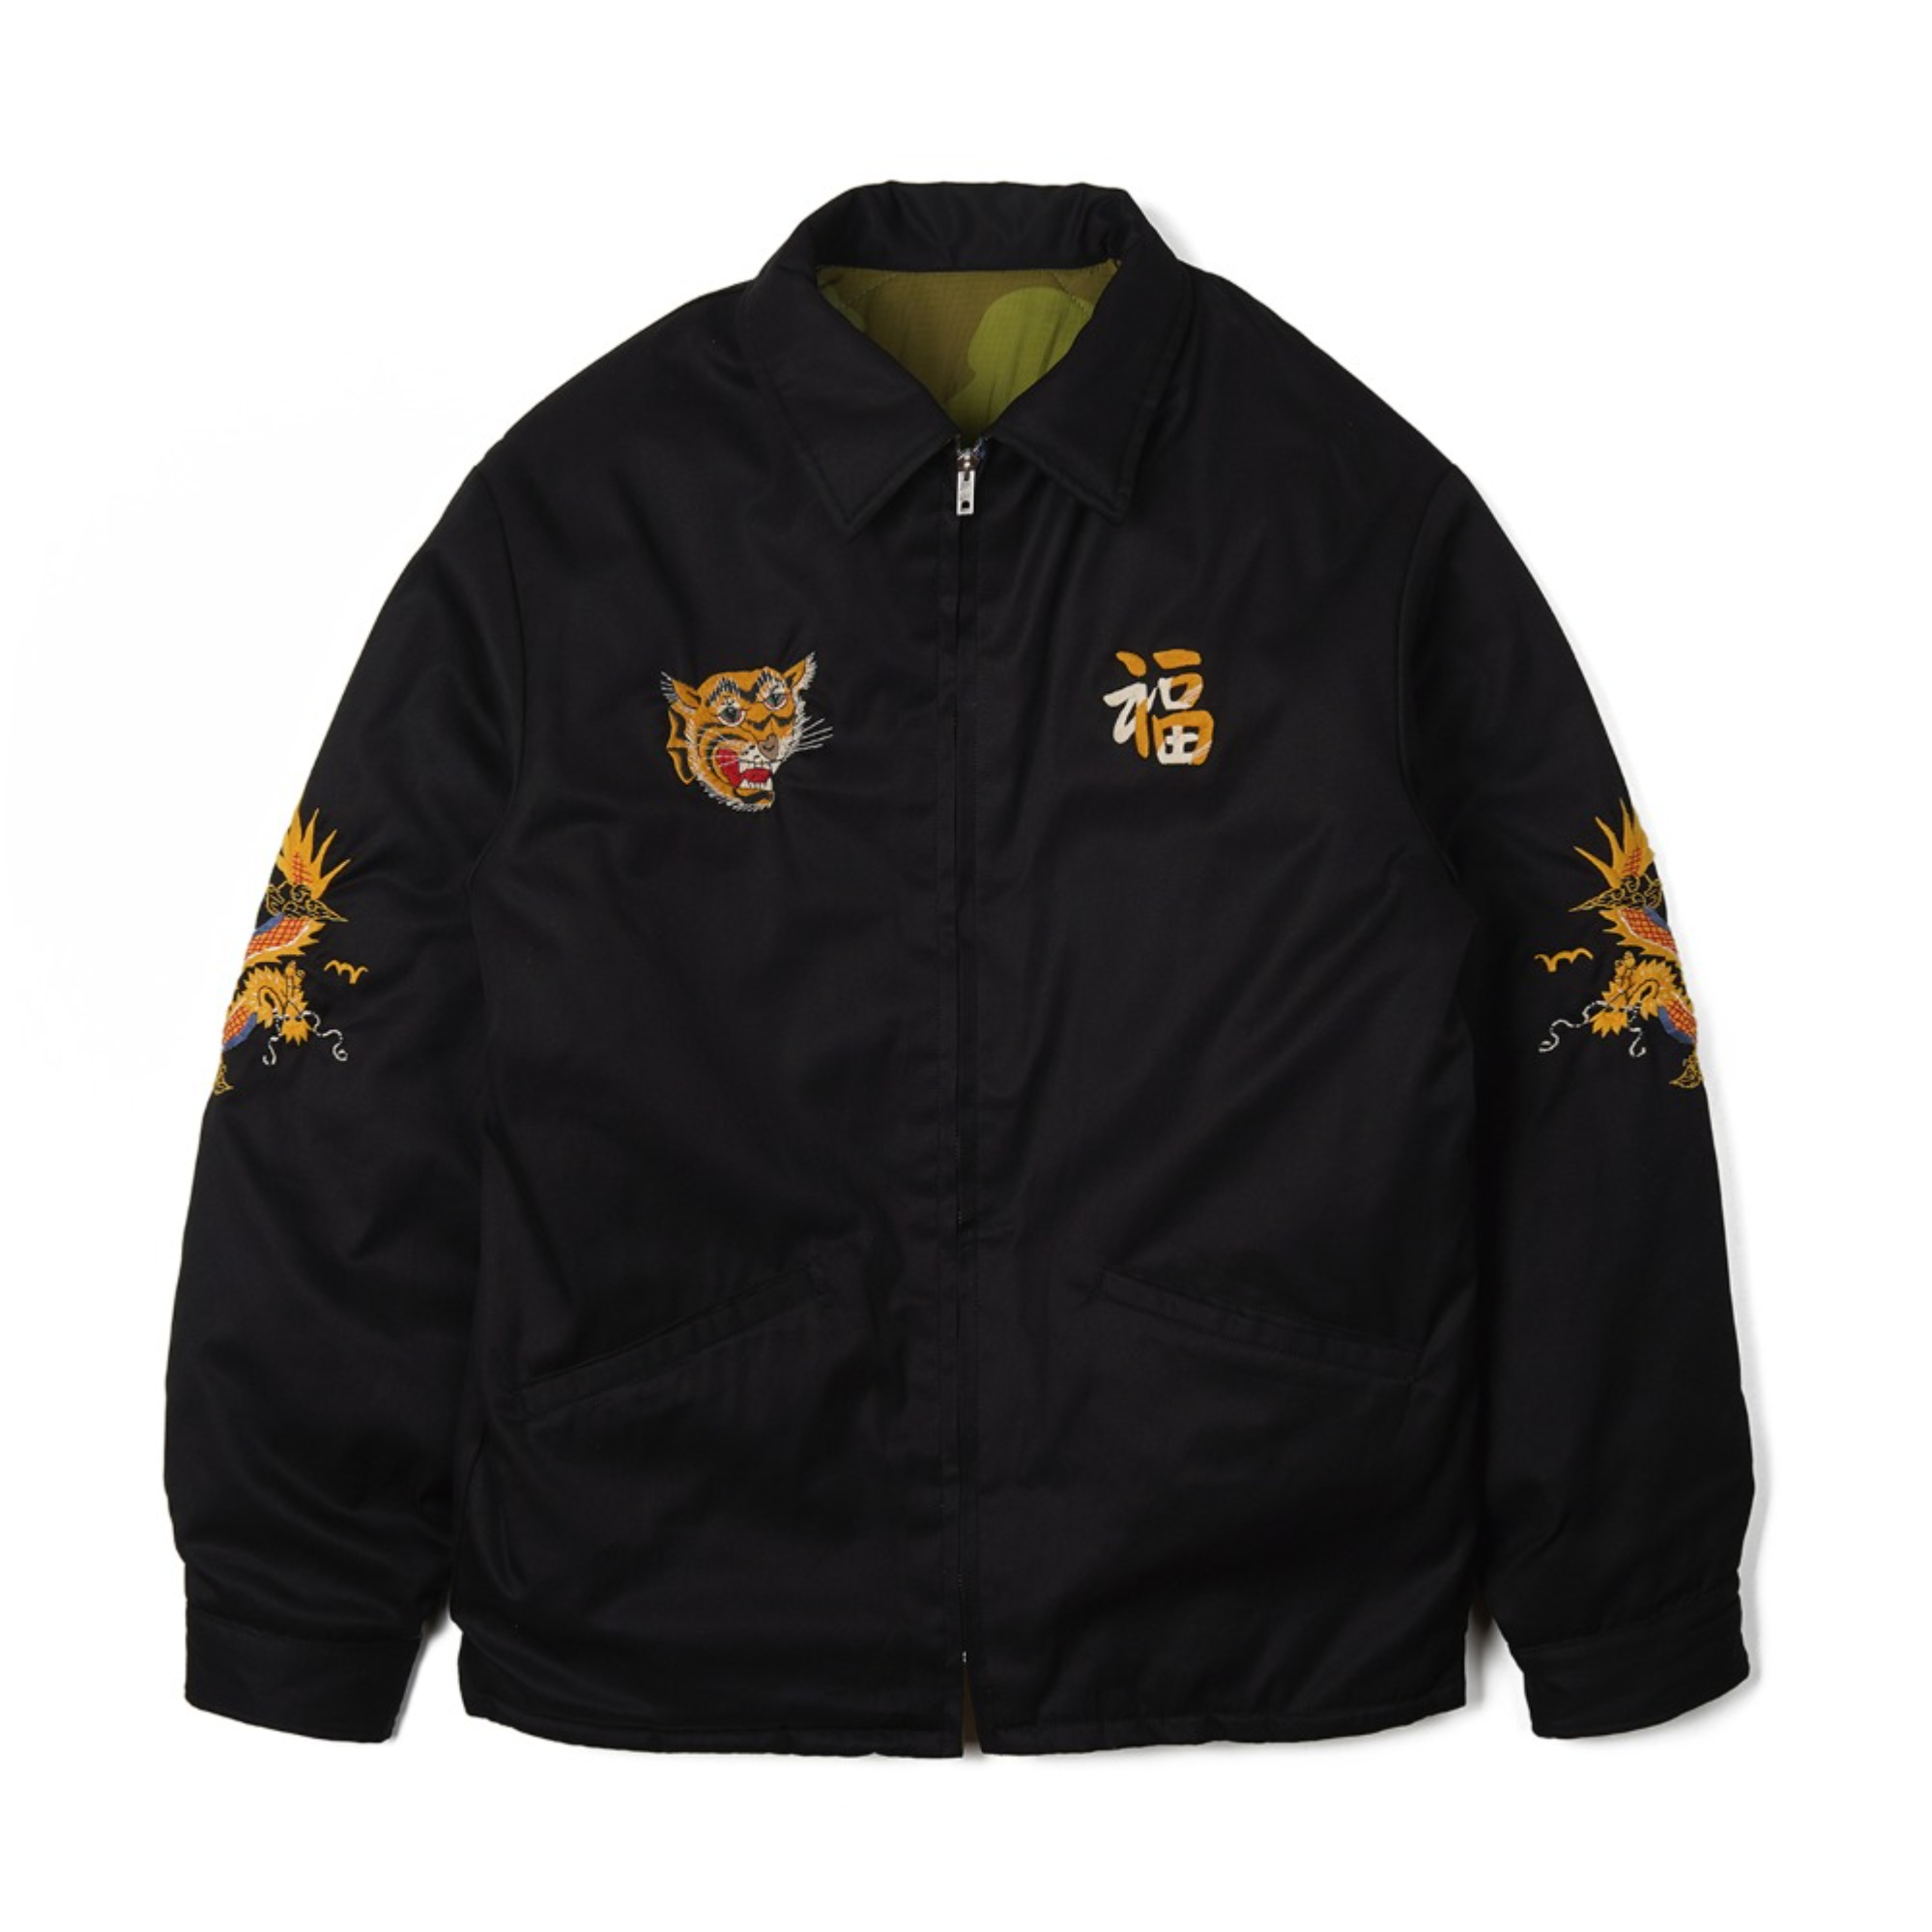 "TAILOR TOYO Reversible Vietnam Jacket VIETNAM MAP X DRAGON ""Black"""